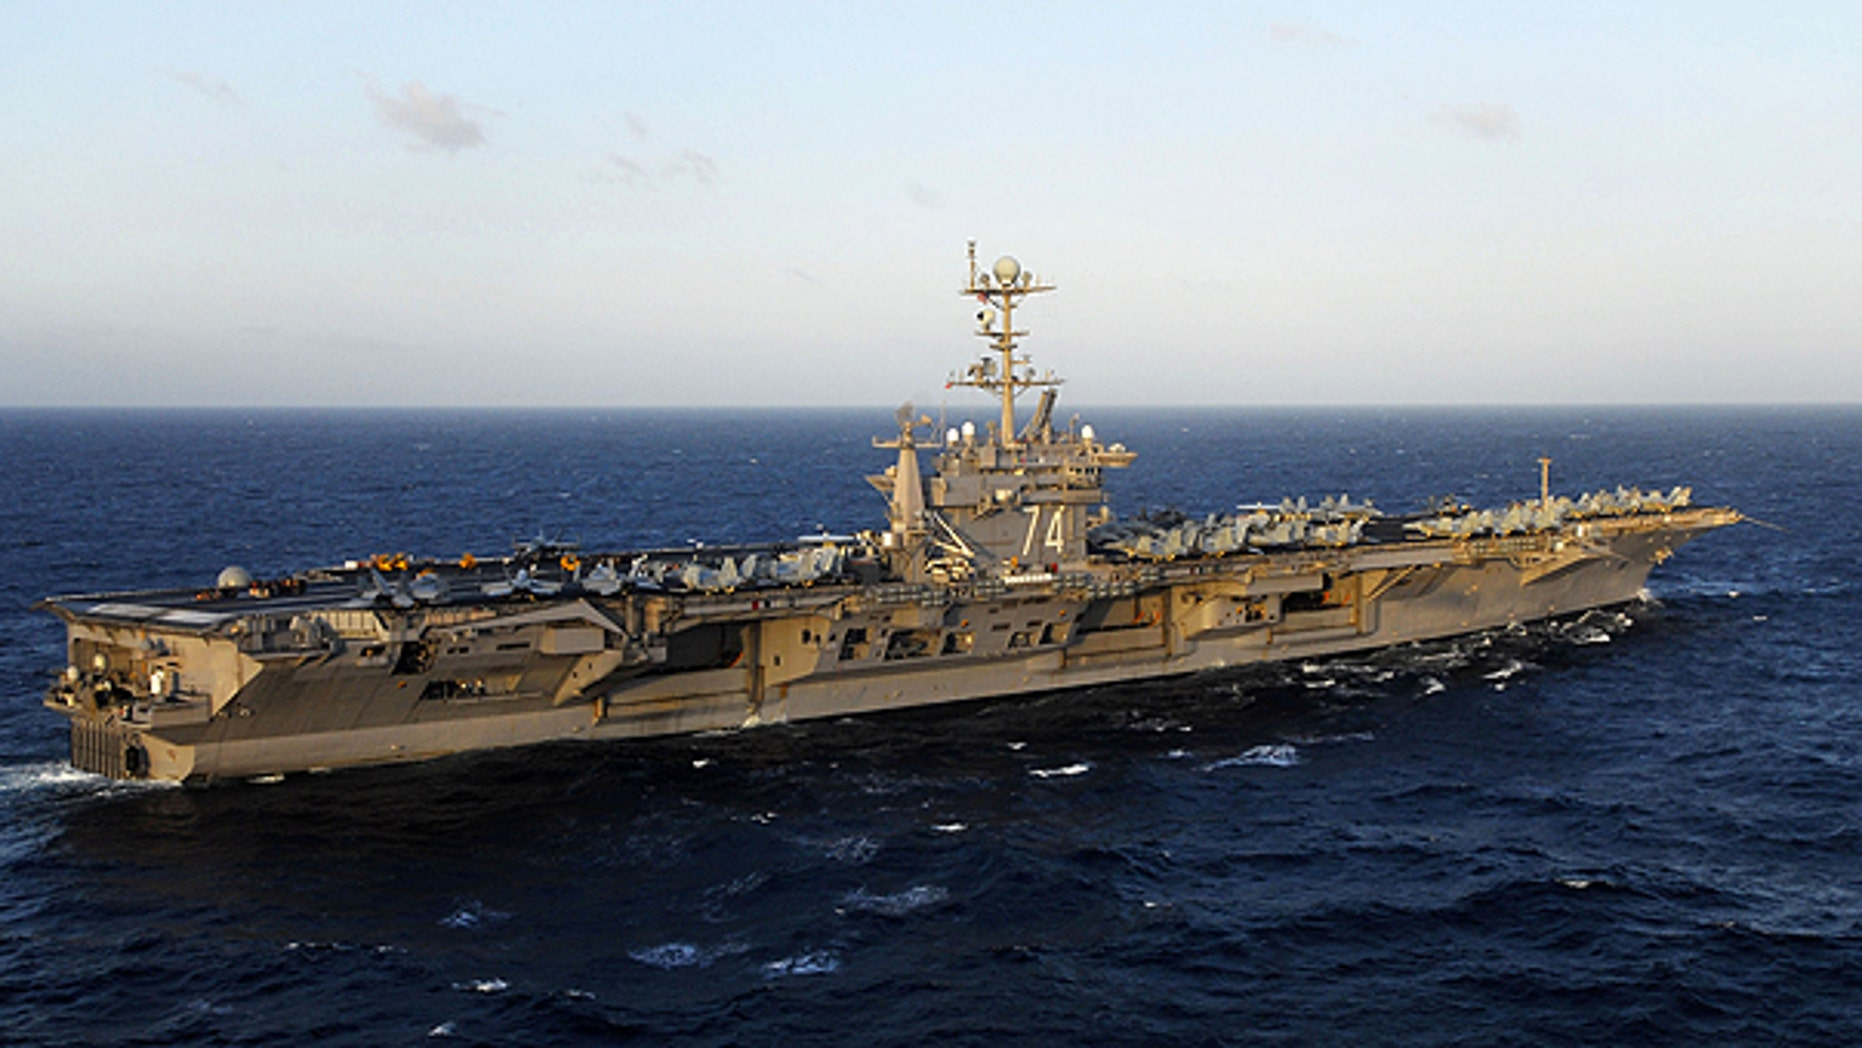 In this image provided by the U.S. Navy the aircraft carrier USS John C. Stennis is shown at sea in the Pacific Ocean on Nov. 14, 2009.